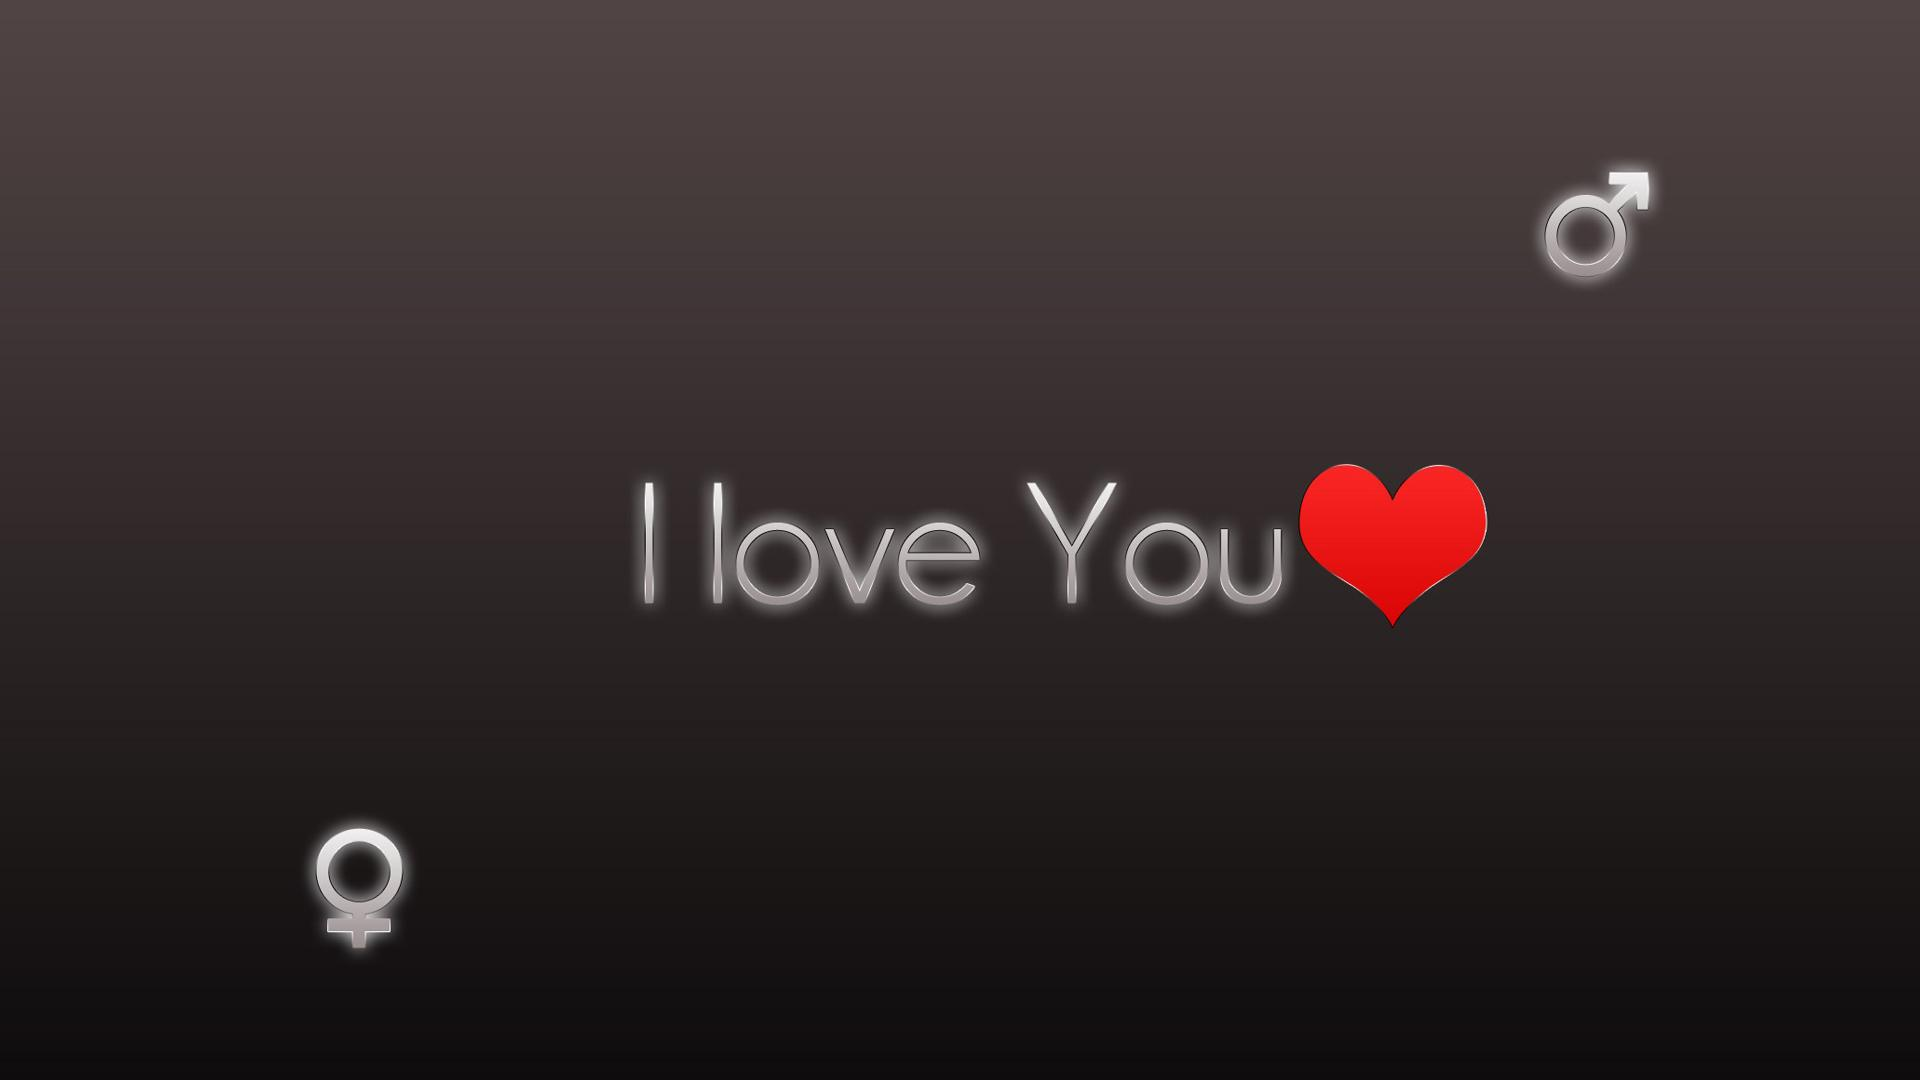 I Love You Heart 2013 HD Wallpaper HD Wallpaper of 1920x1080